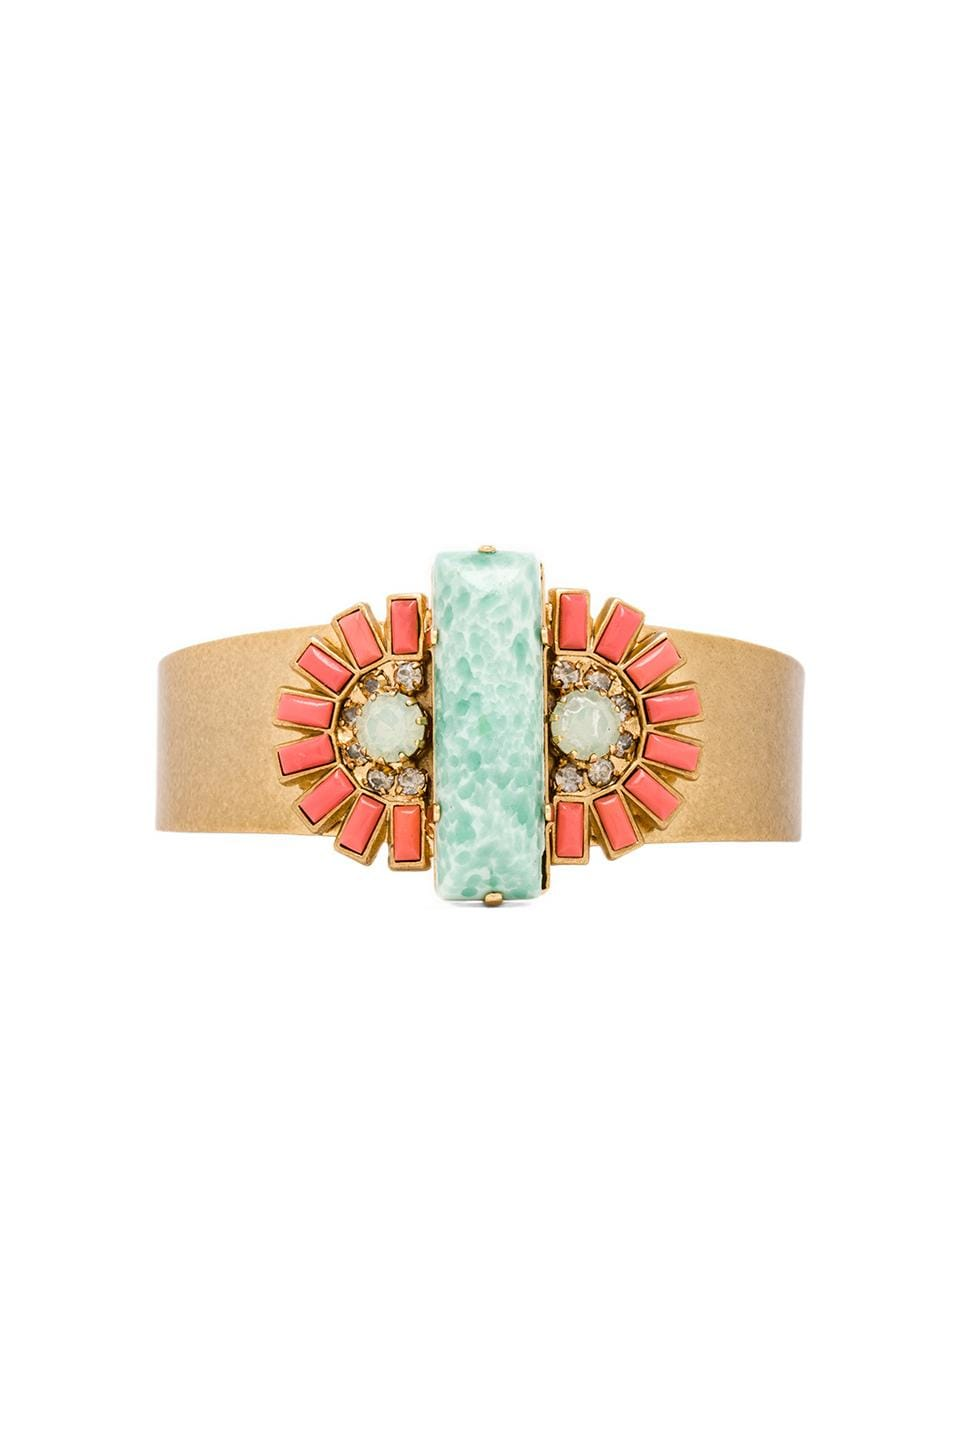 Elizabeth Cole Cuff in Vintage Turquoise